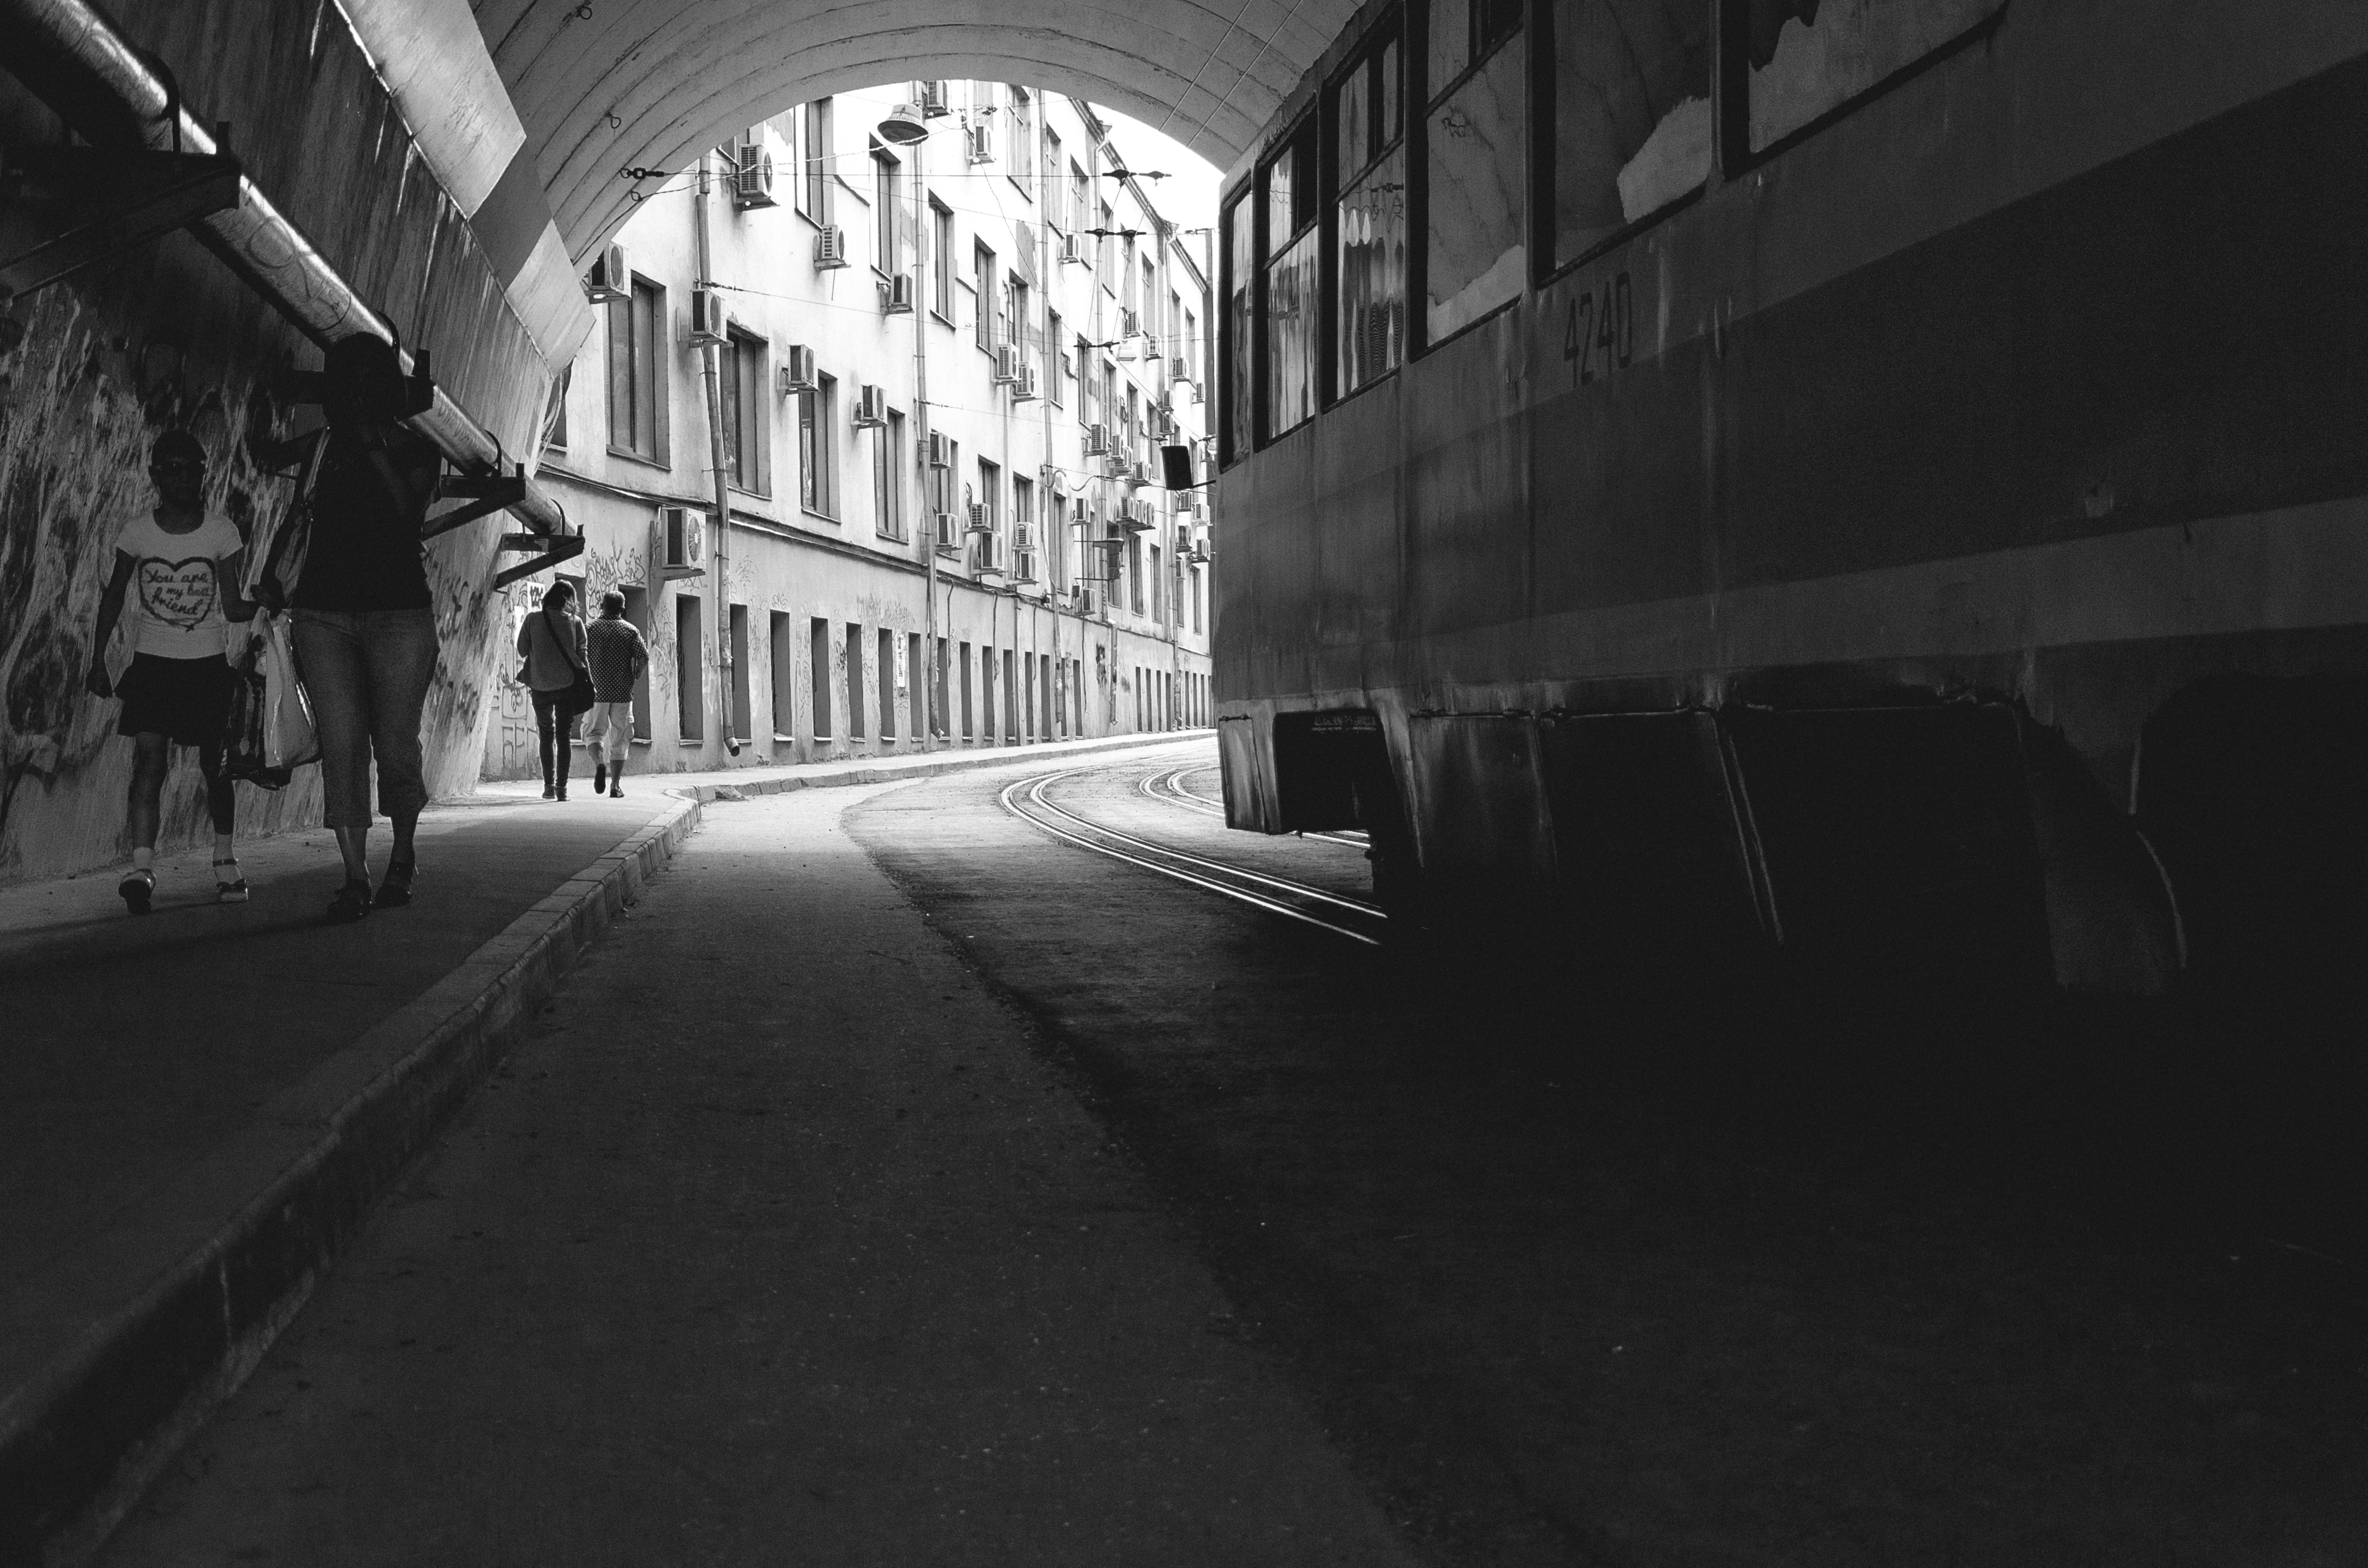 Moscow tunnels